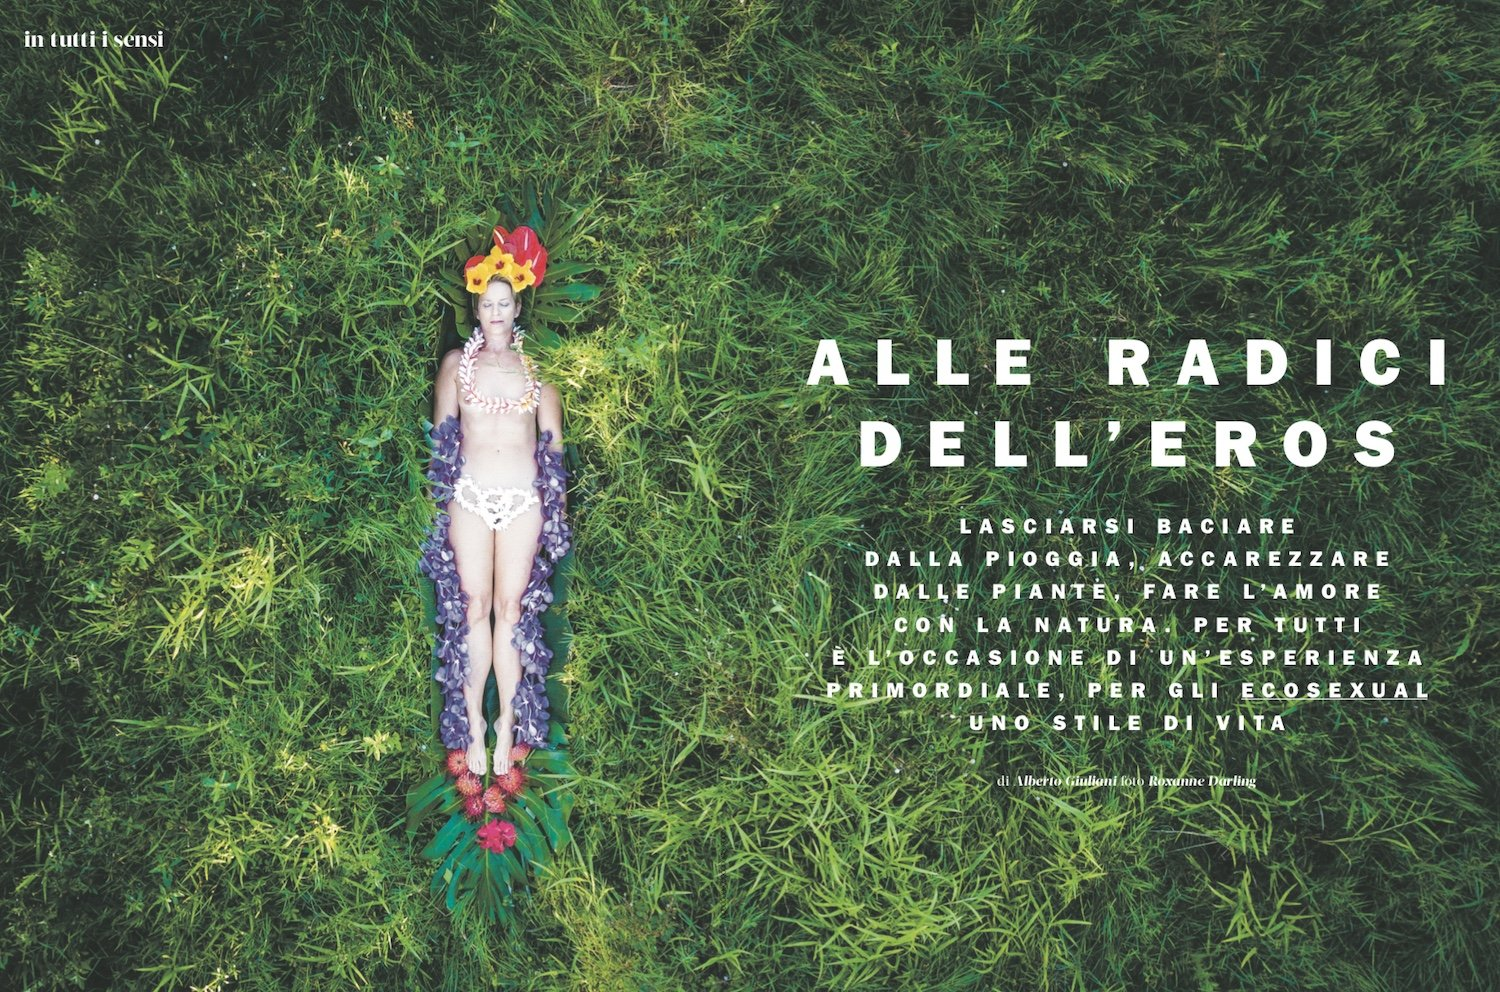 photo spread in Marie Claire Italia magazine with Roxanne Darling